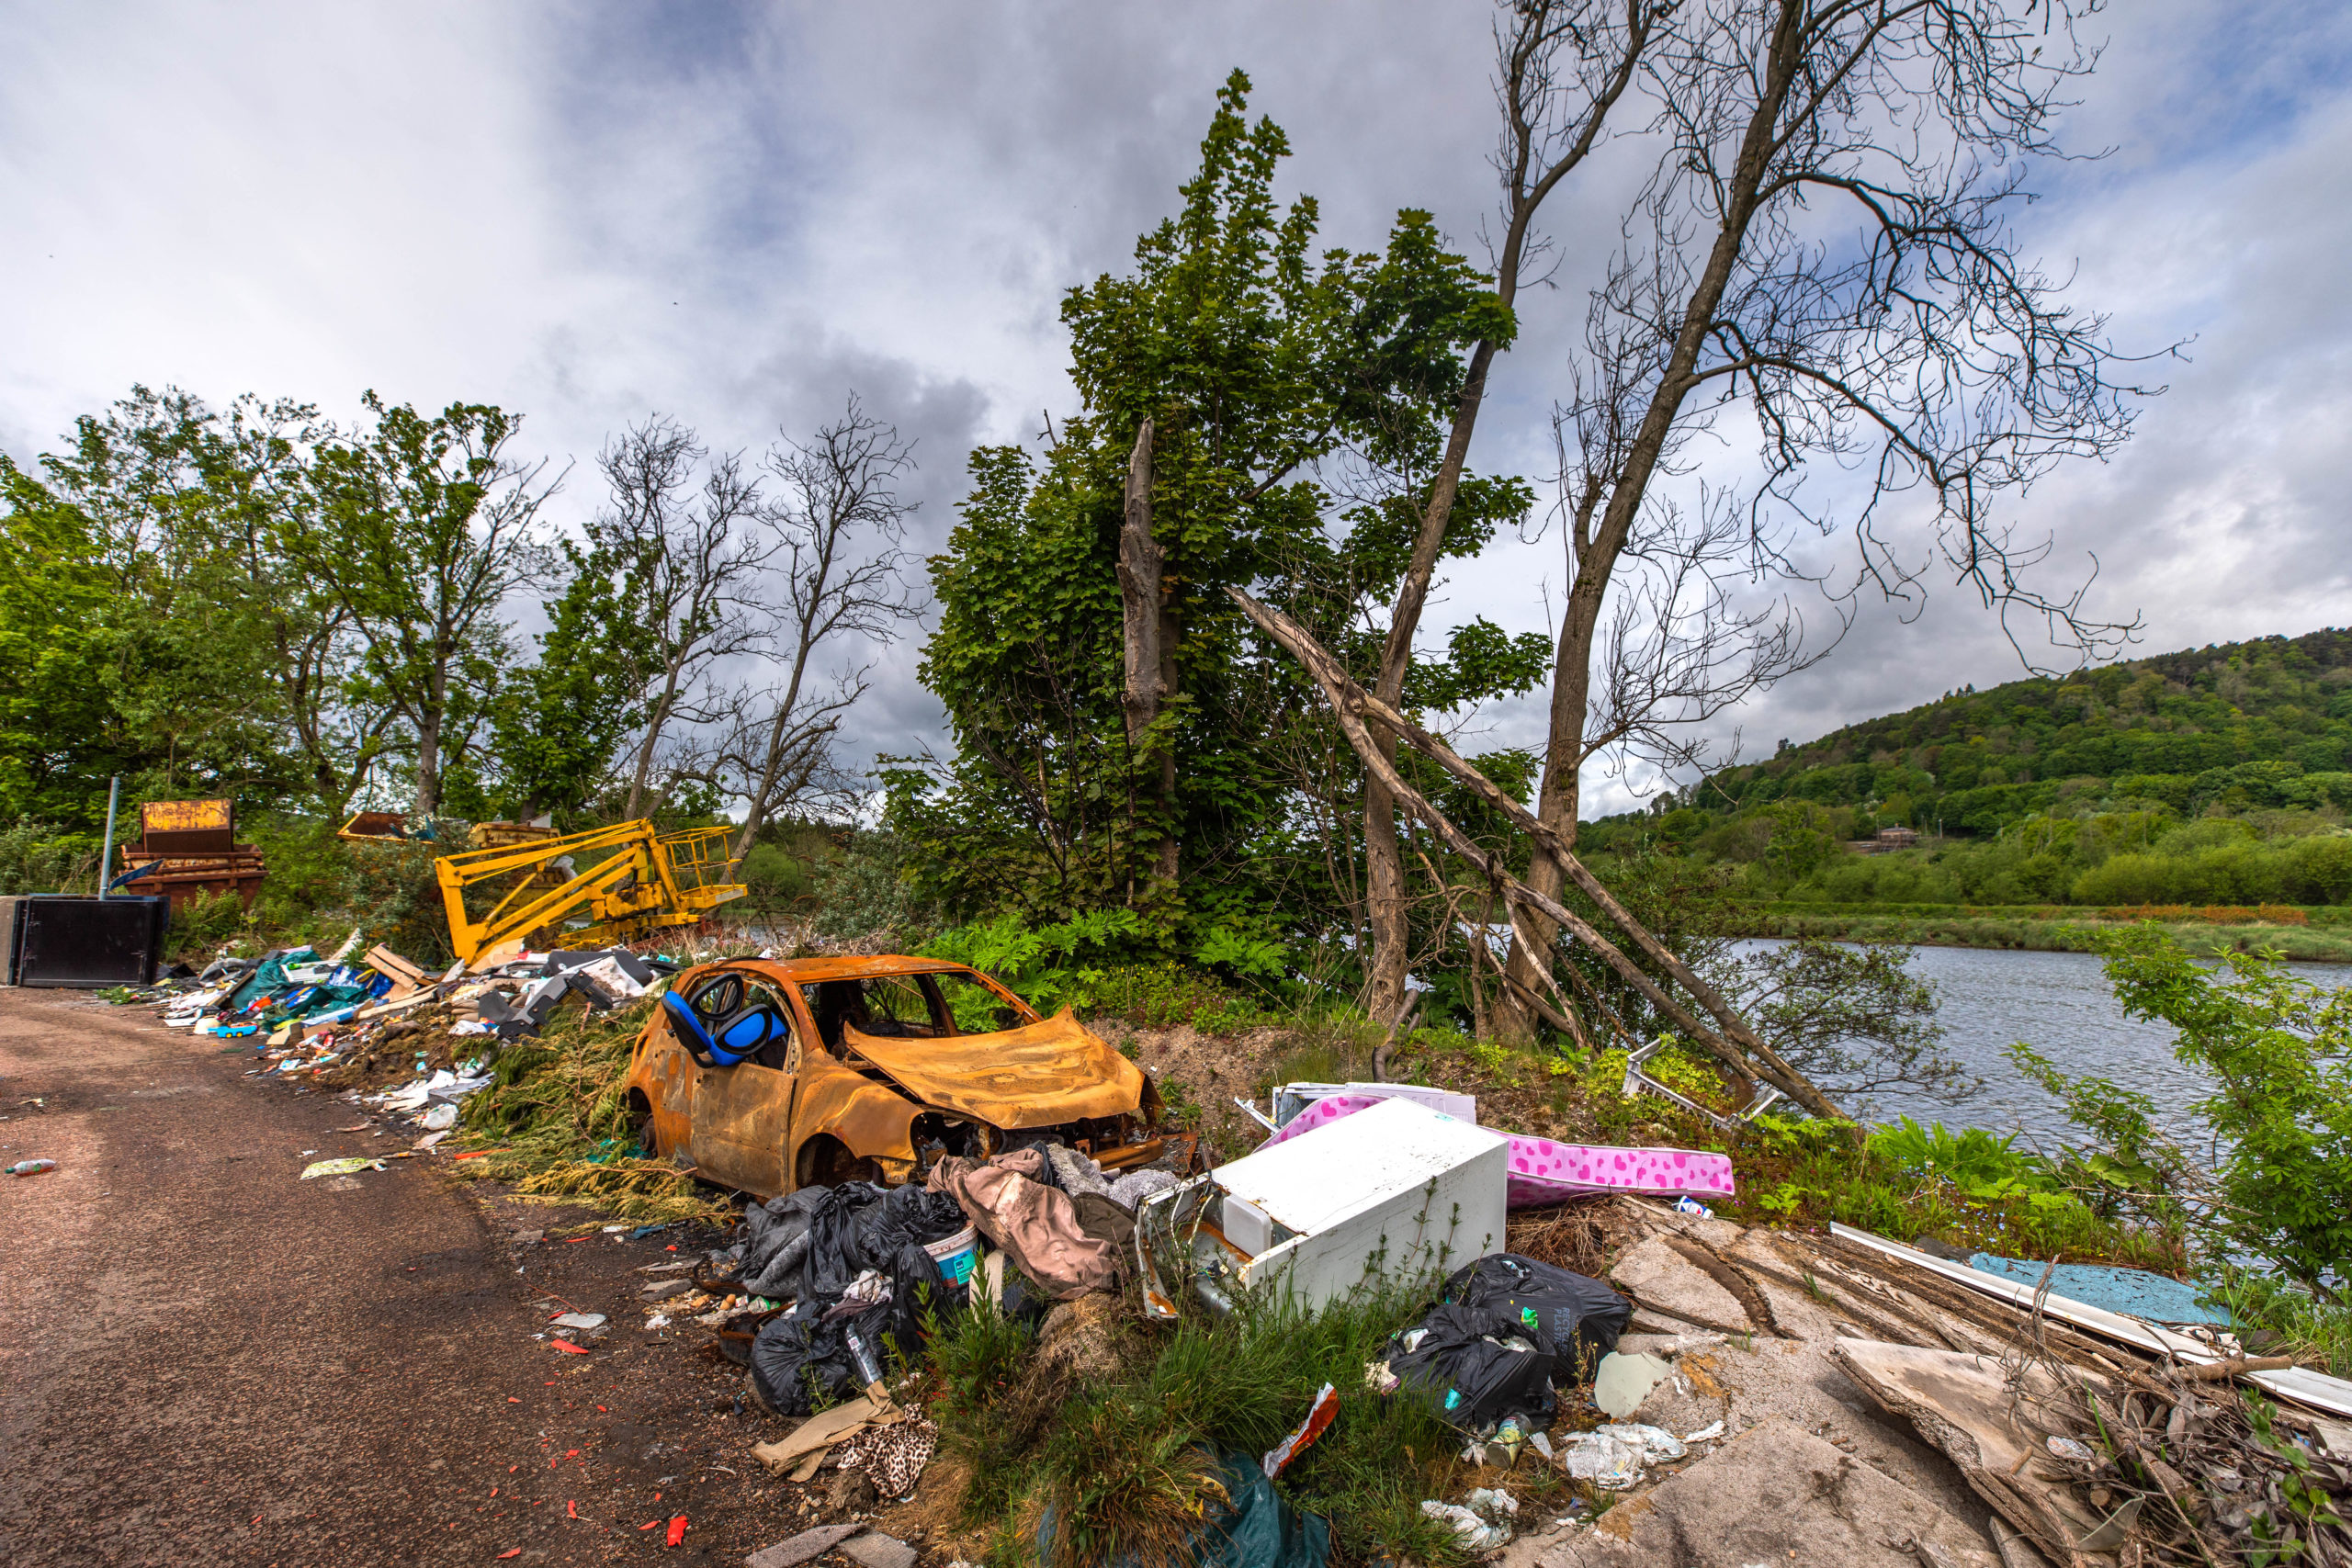 There has been a surge in illegal dumping in rural spots during lockdown.